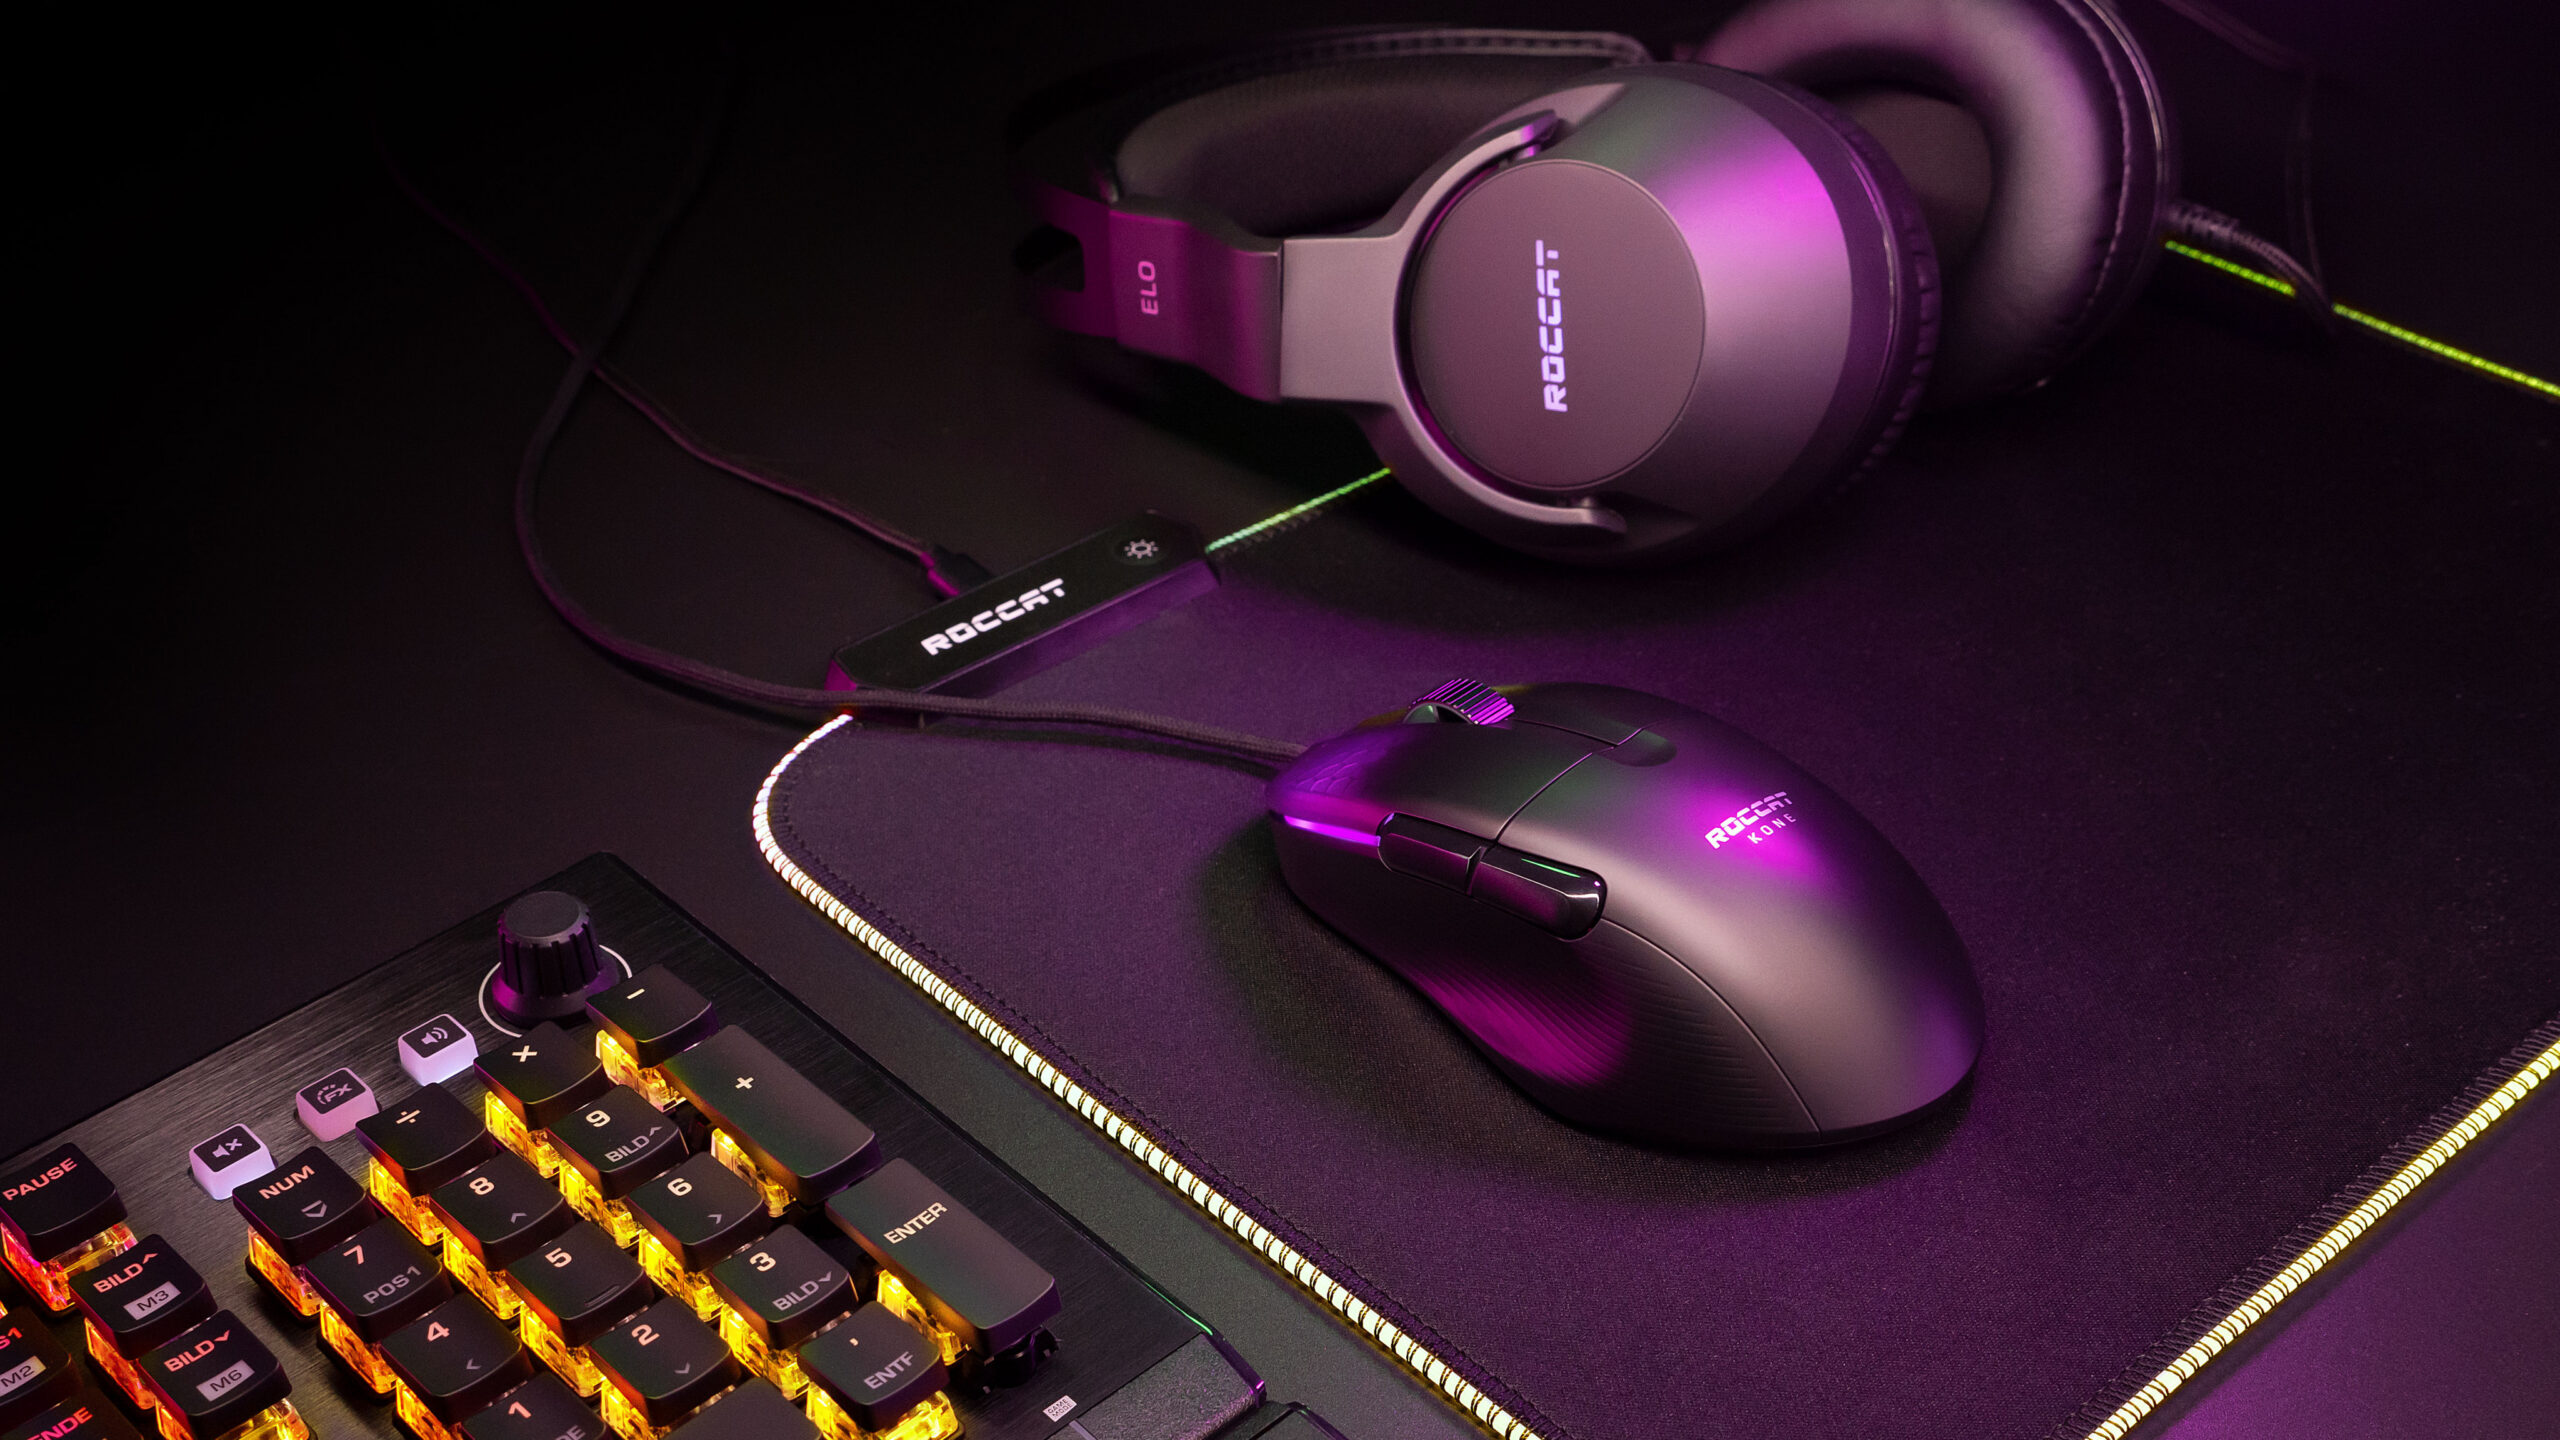 Roccat Kone Pro Review: Gaming Gone Gorgeous